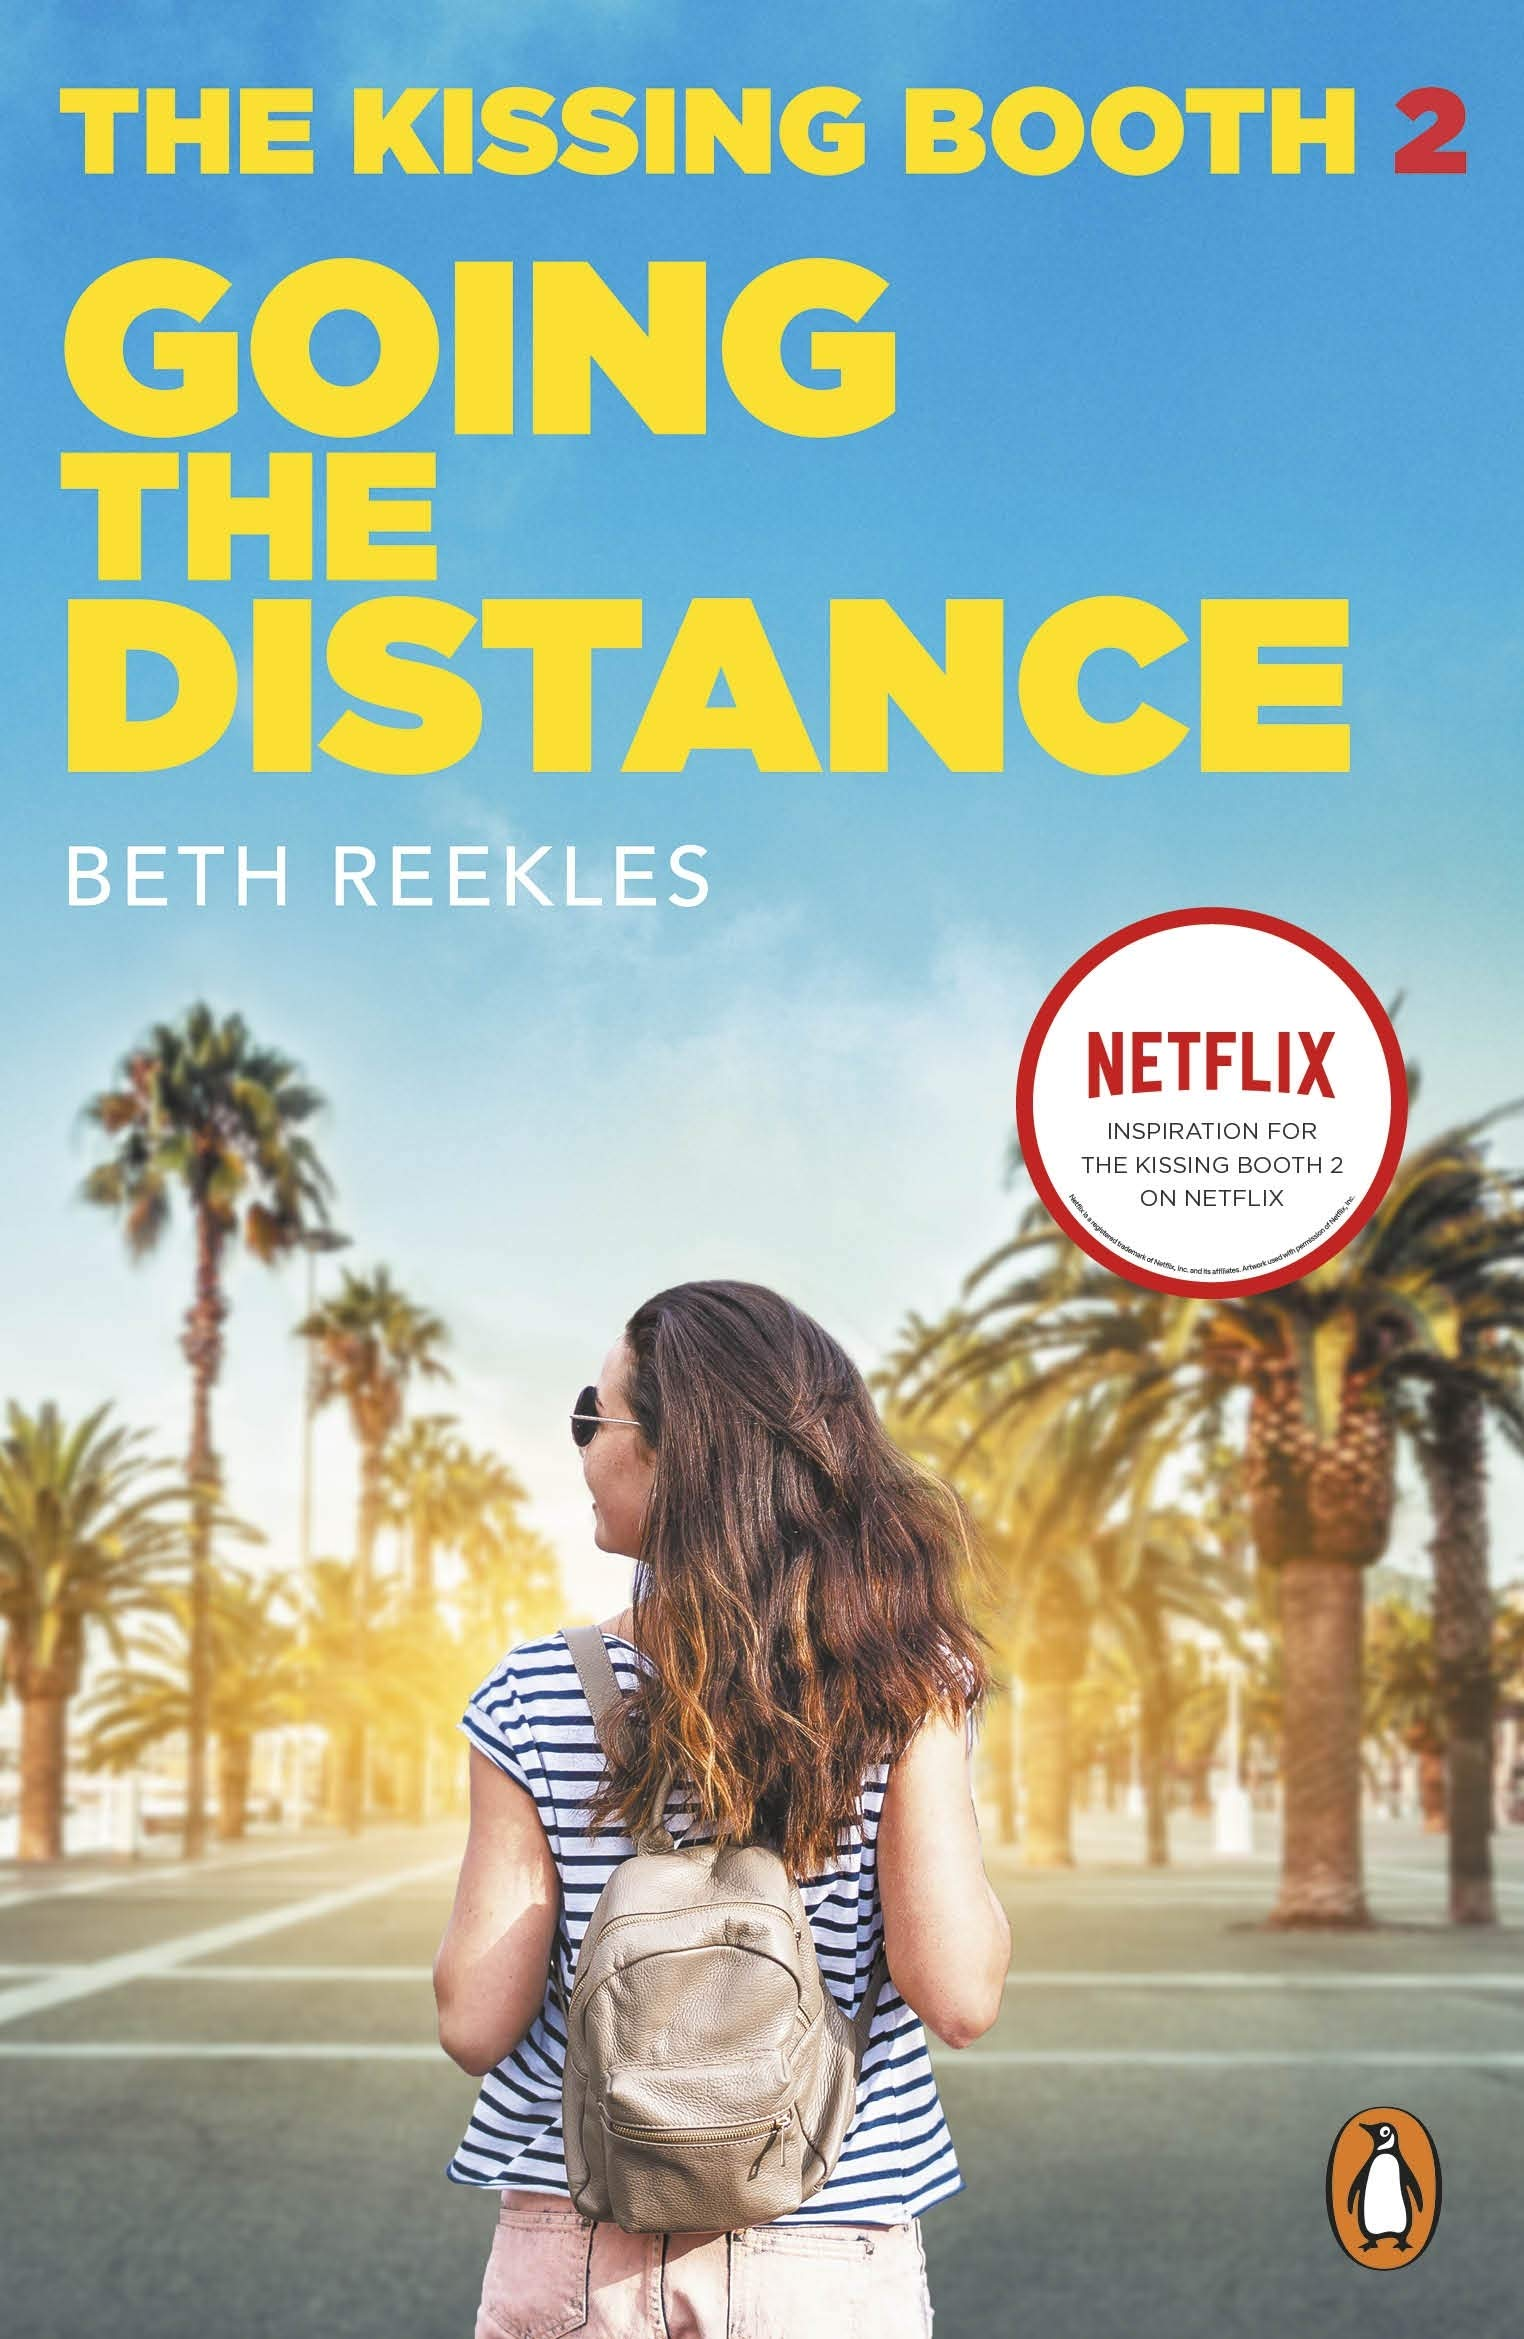 The Kissing Booth 2 Going The Distance Reekles Beth 9780241413227 Amazon Com Books